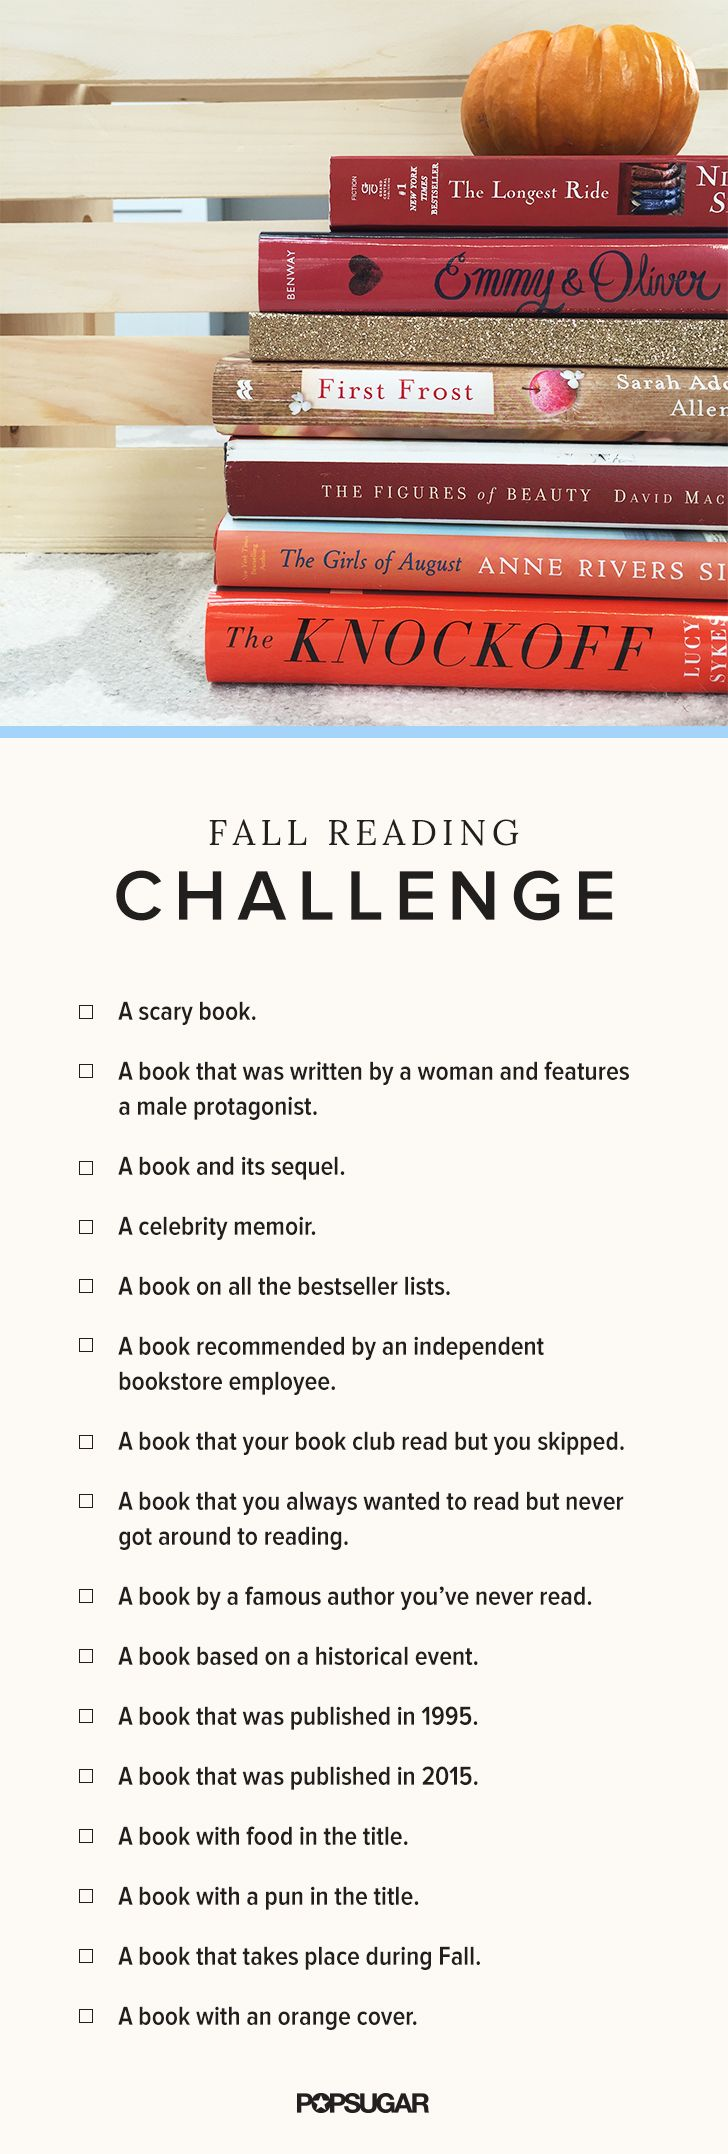 Take An Ultimate Fall Reading Challenge! --  Instead of offering specific books, they are  offering different types of books to try, and you might just like this fun way to diversify your to-be-read pile.